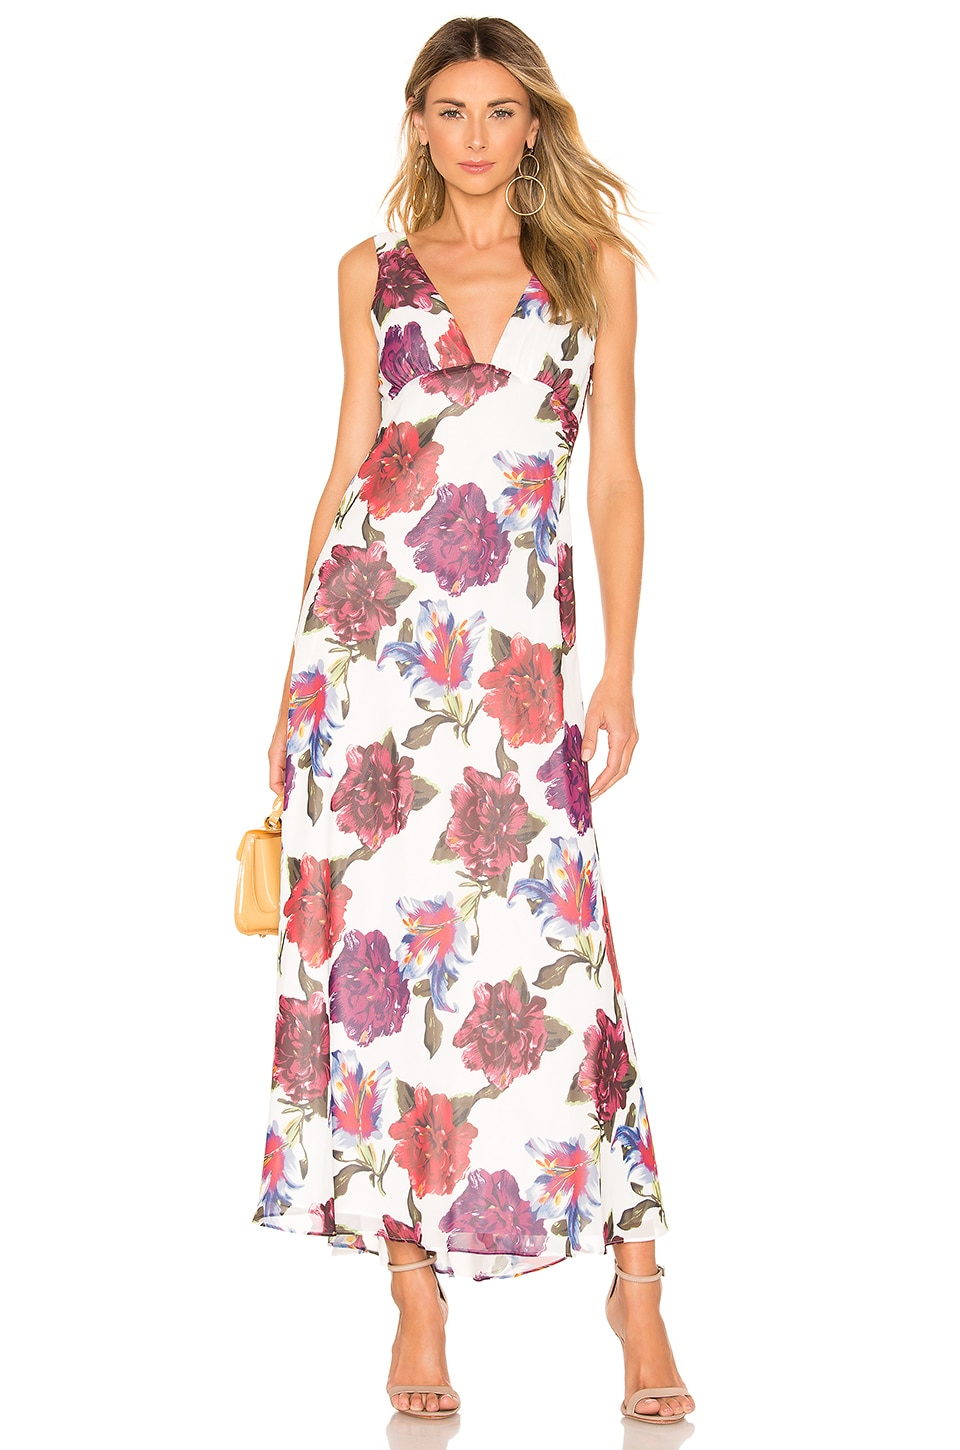 Privacy Please Descanso Maxi Dress in Lilac Floral